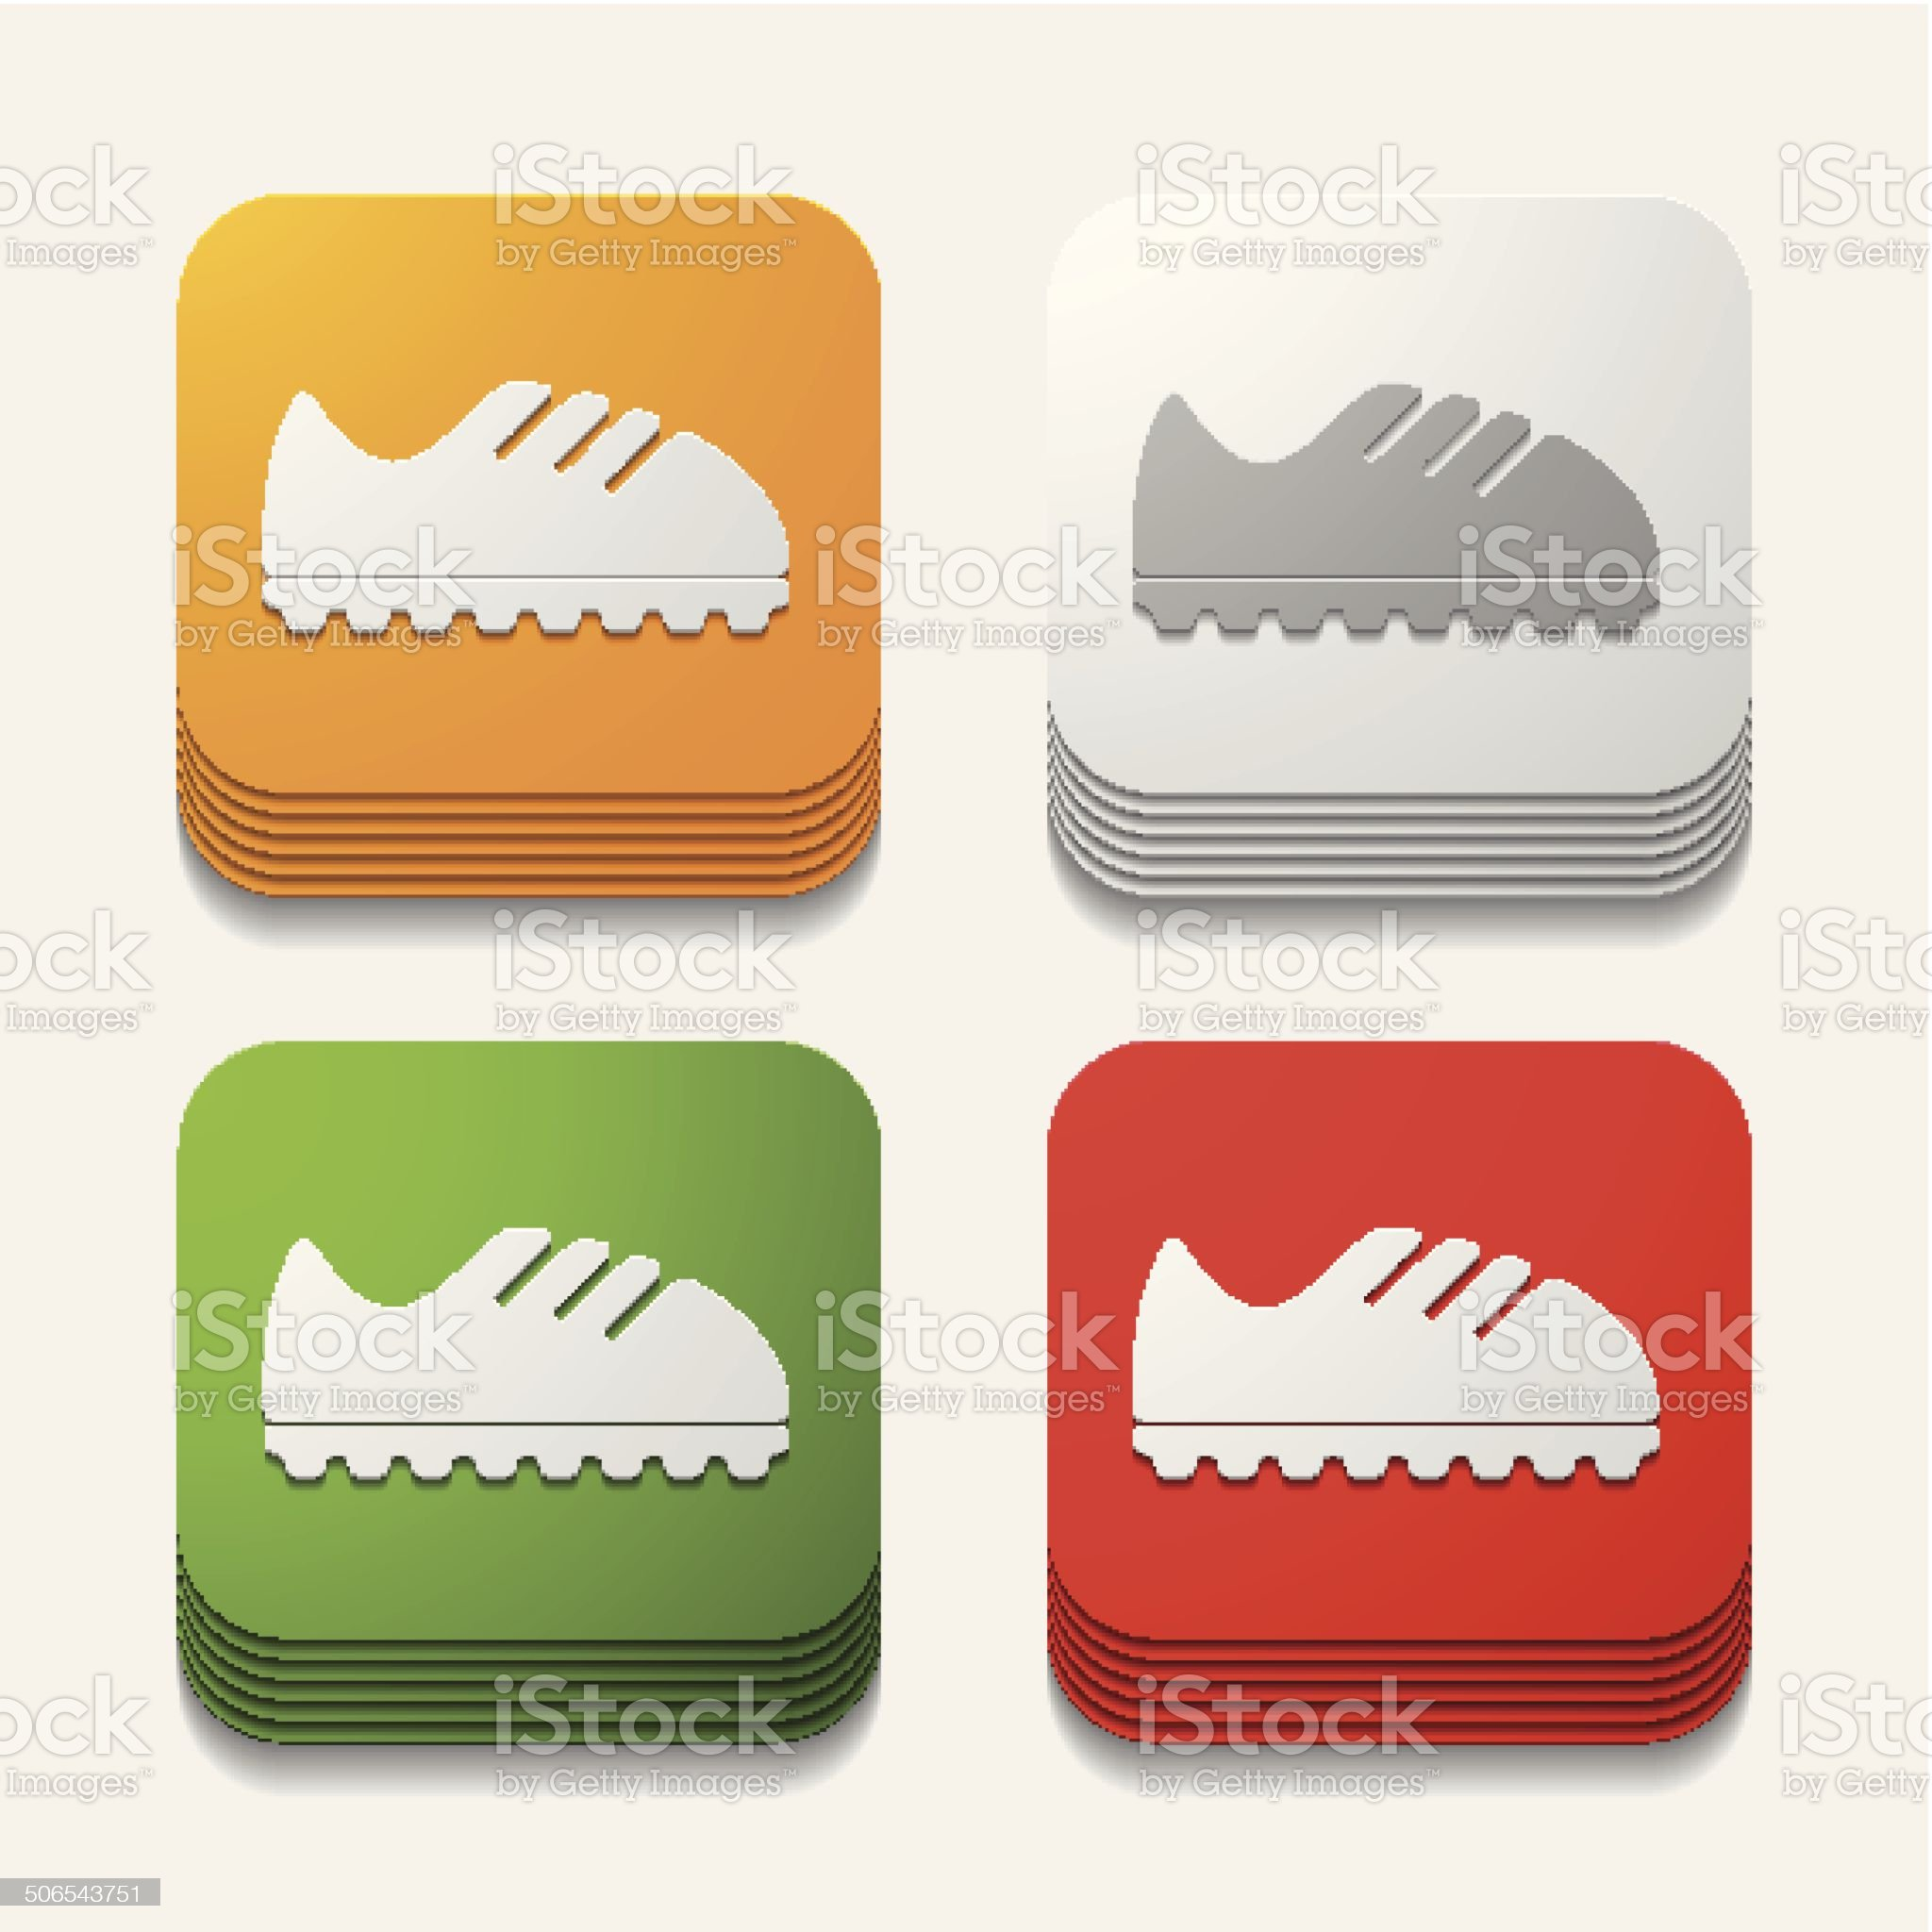 square button: sneakers royalty-free stock vector art